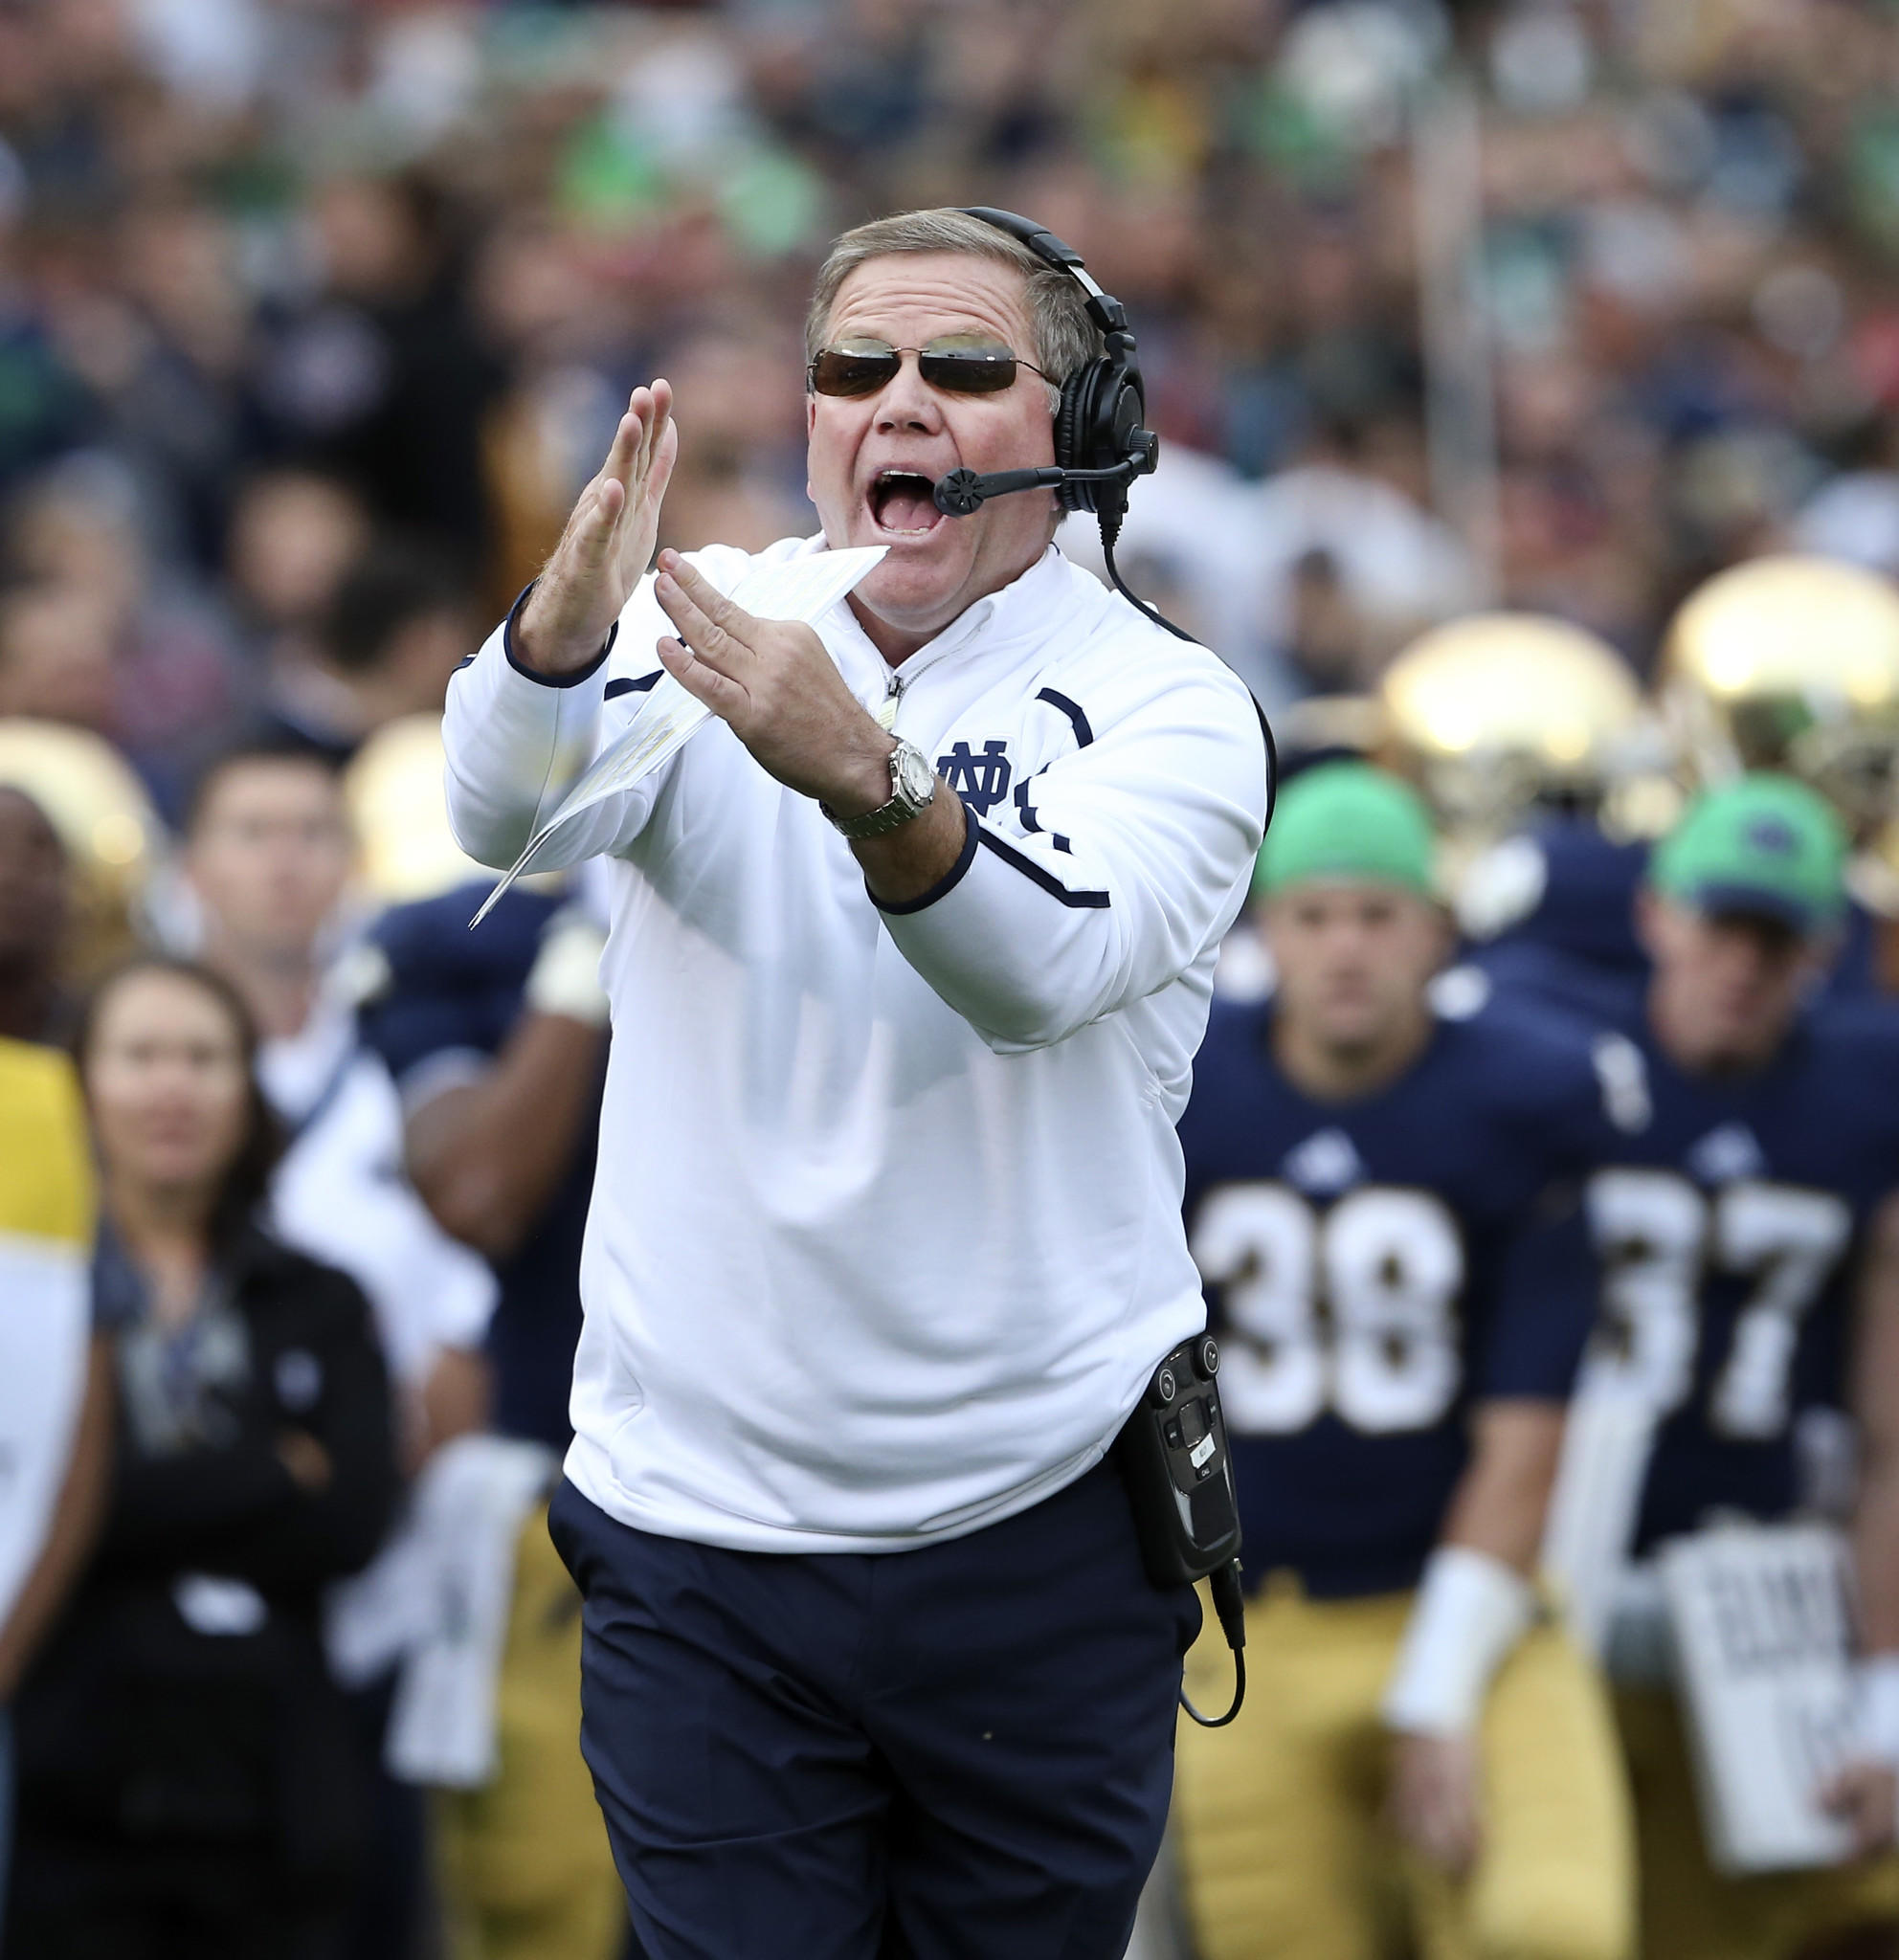 Eagles interview Notre Dame coach Brian Kelly